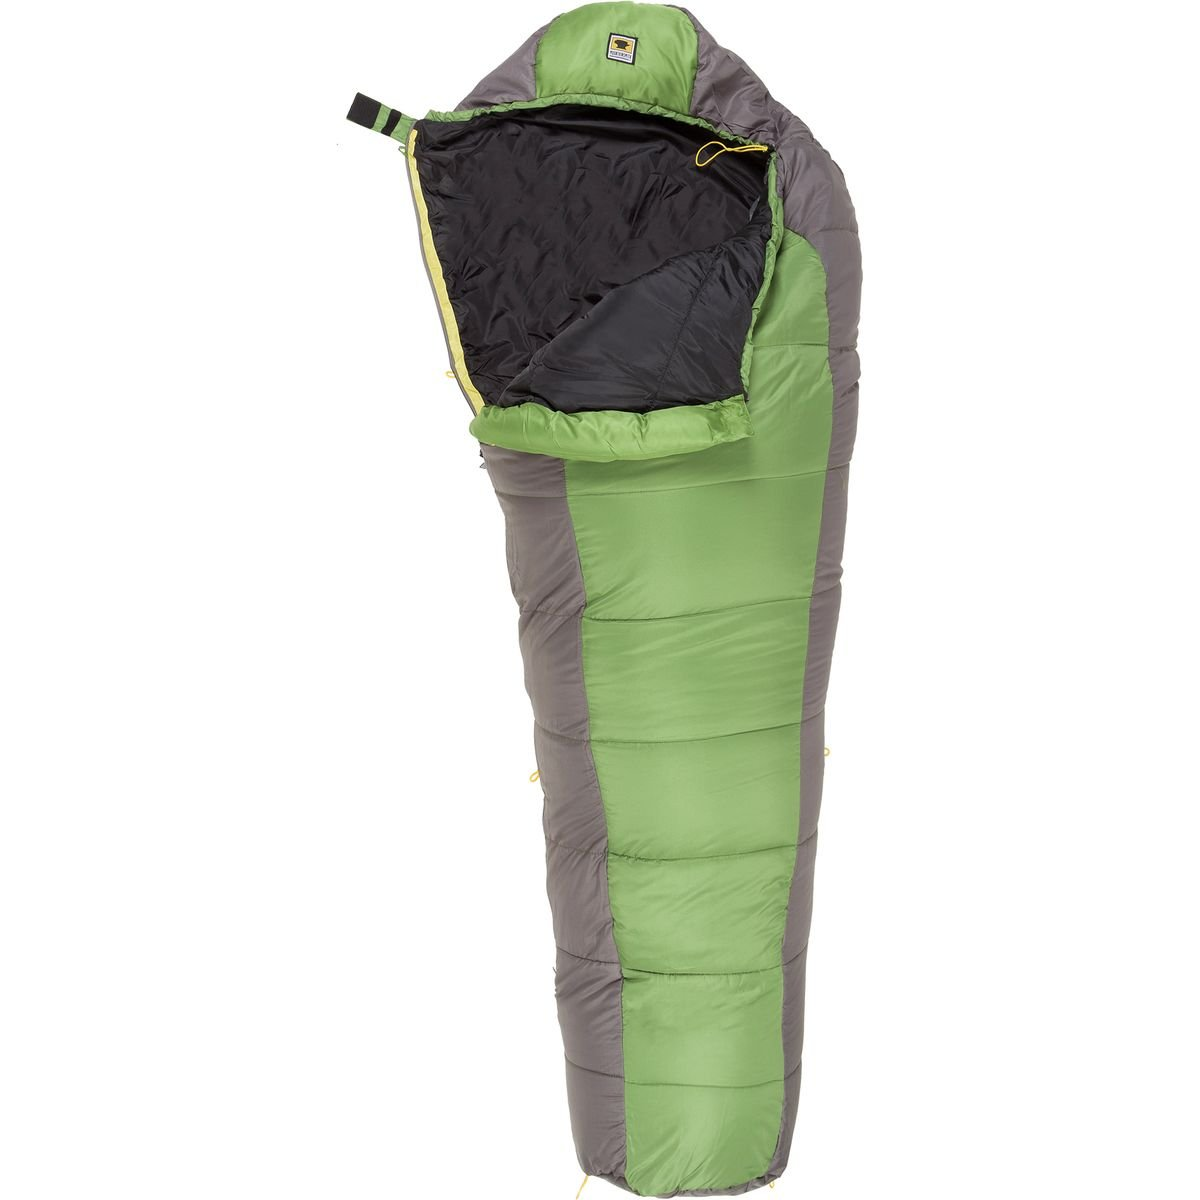 Mountainsmith Antero Sleeping Bag 35 Degree Synthetic